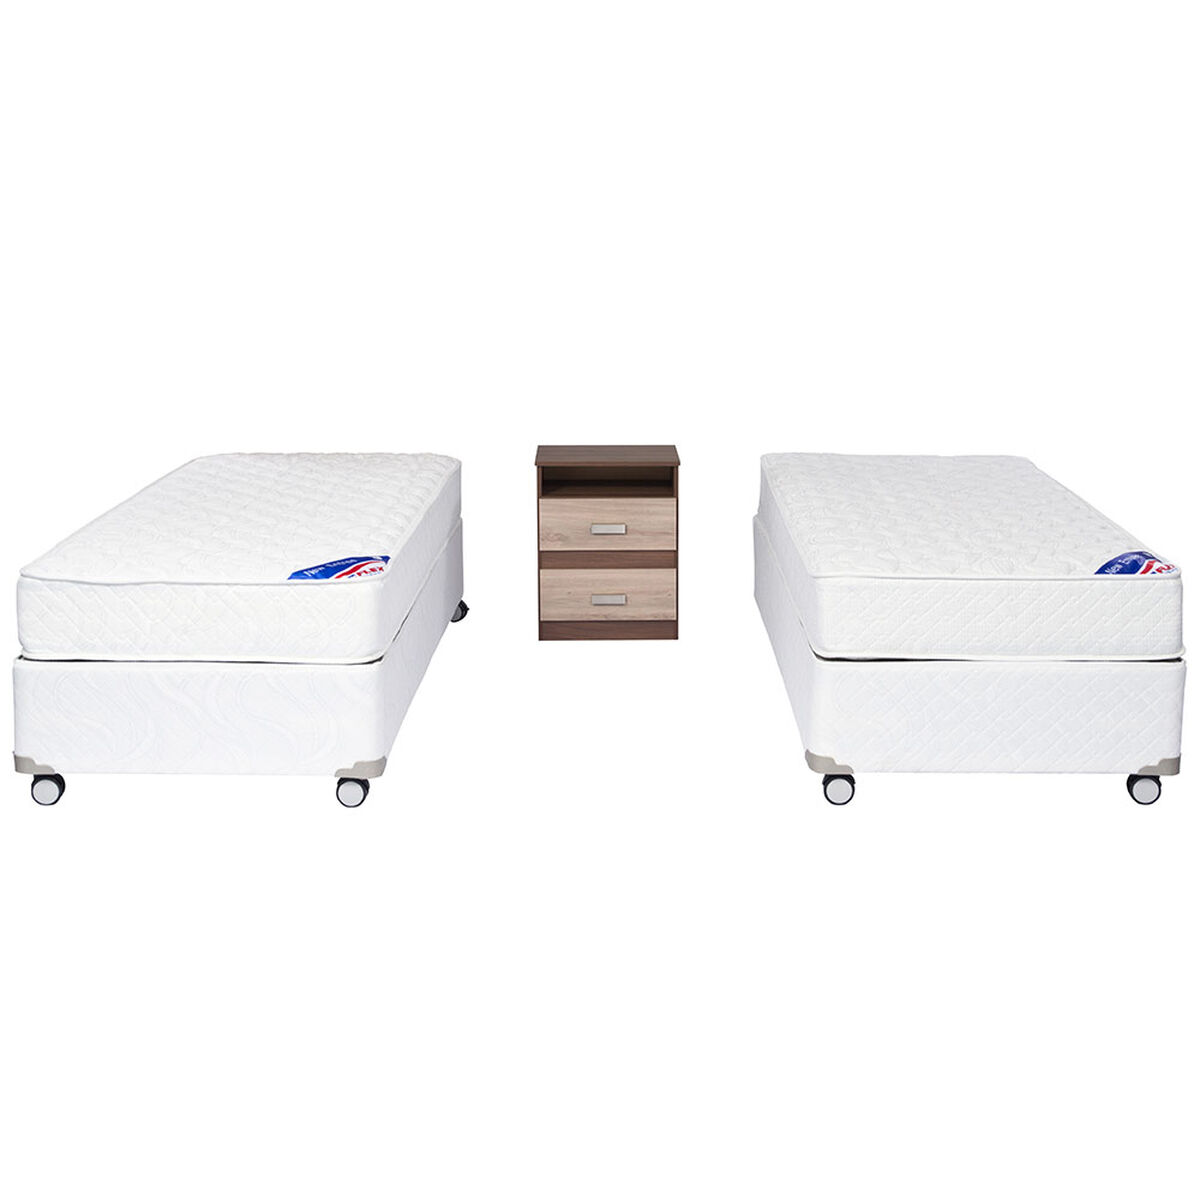 Doble Box Americano New Entree 1 Pl Flex + Velador Milano